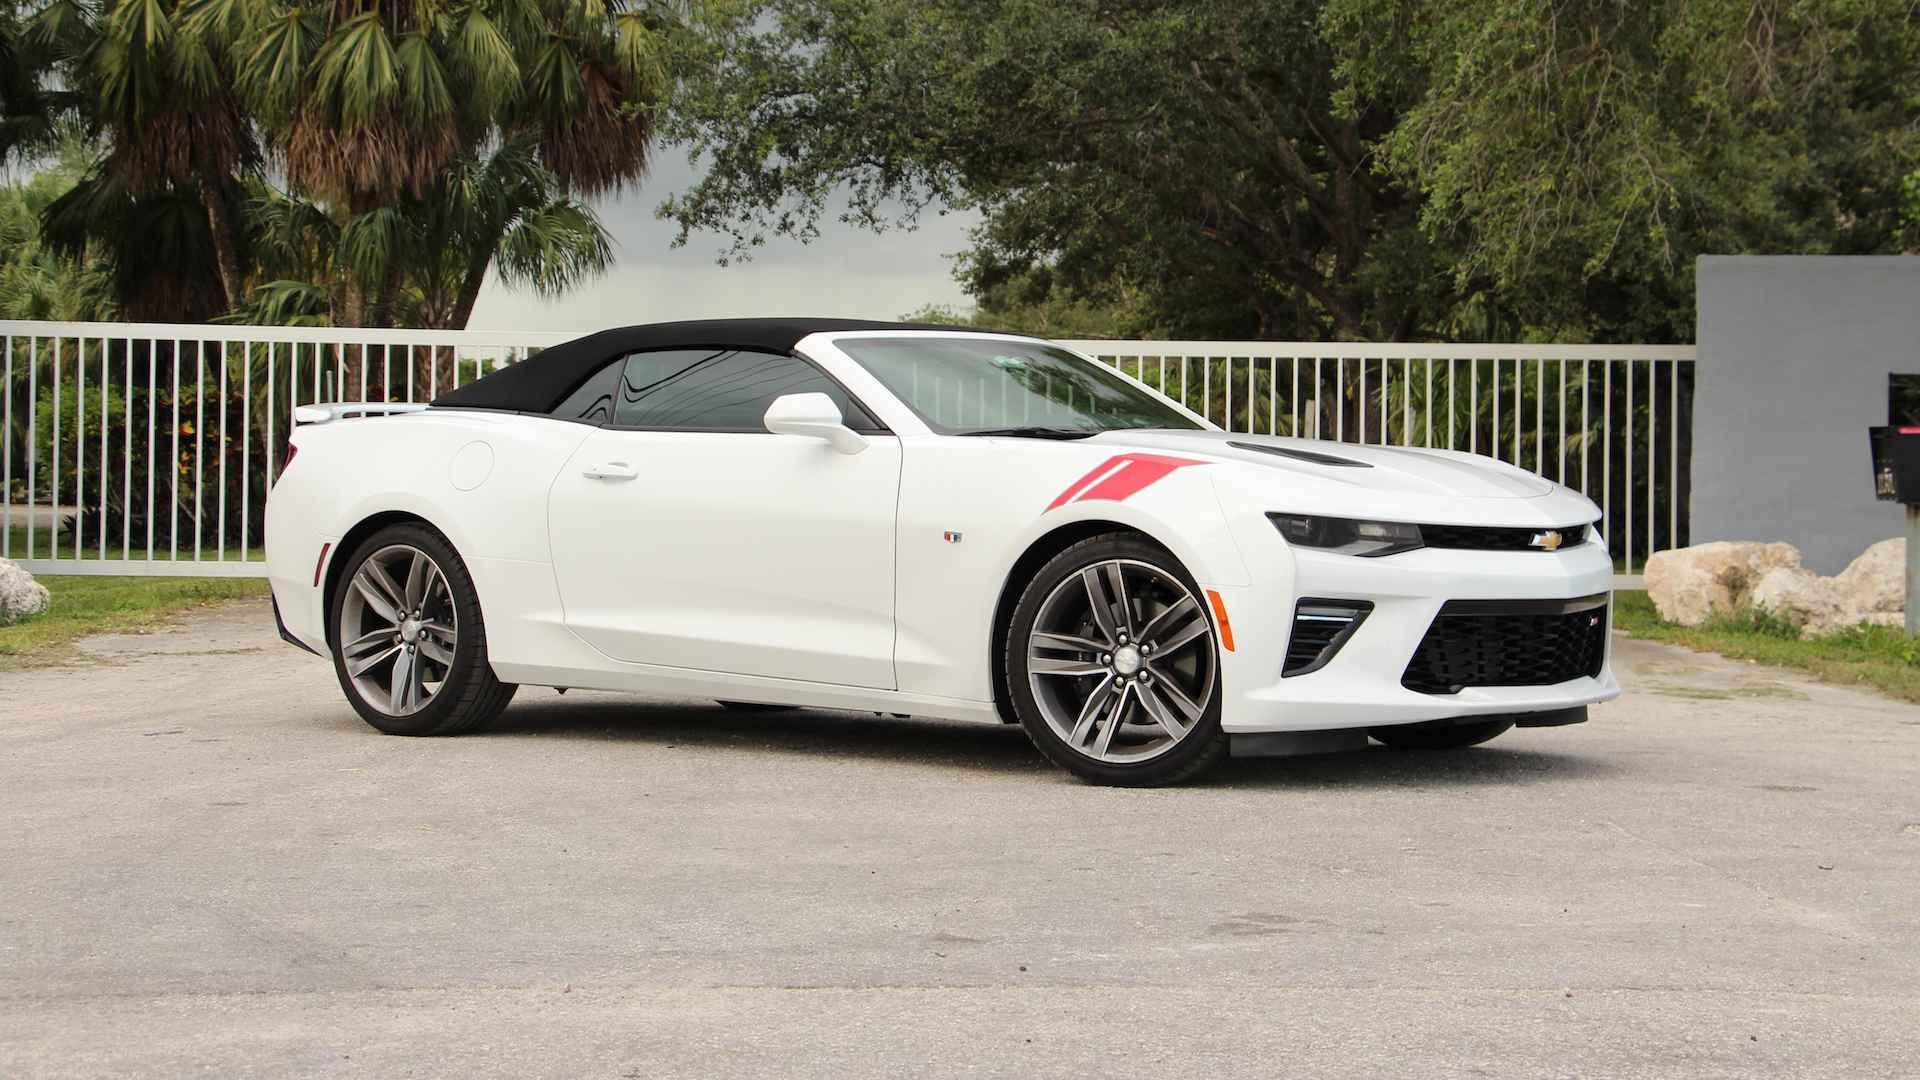 2018 Chevrolet Camaro Ss Convertible Review Win Place Show